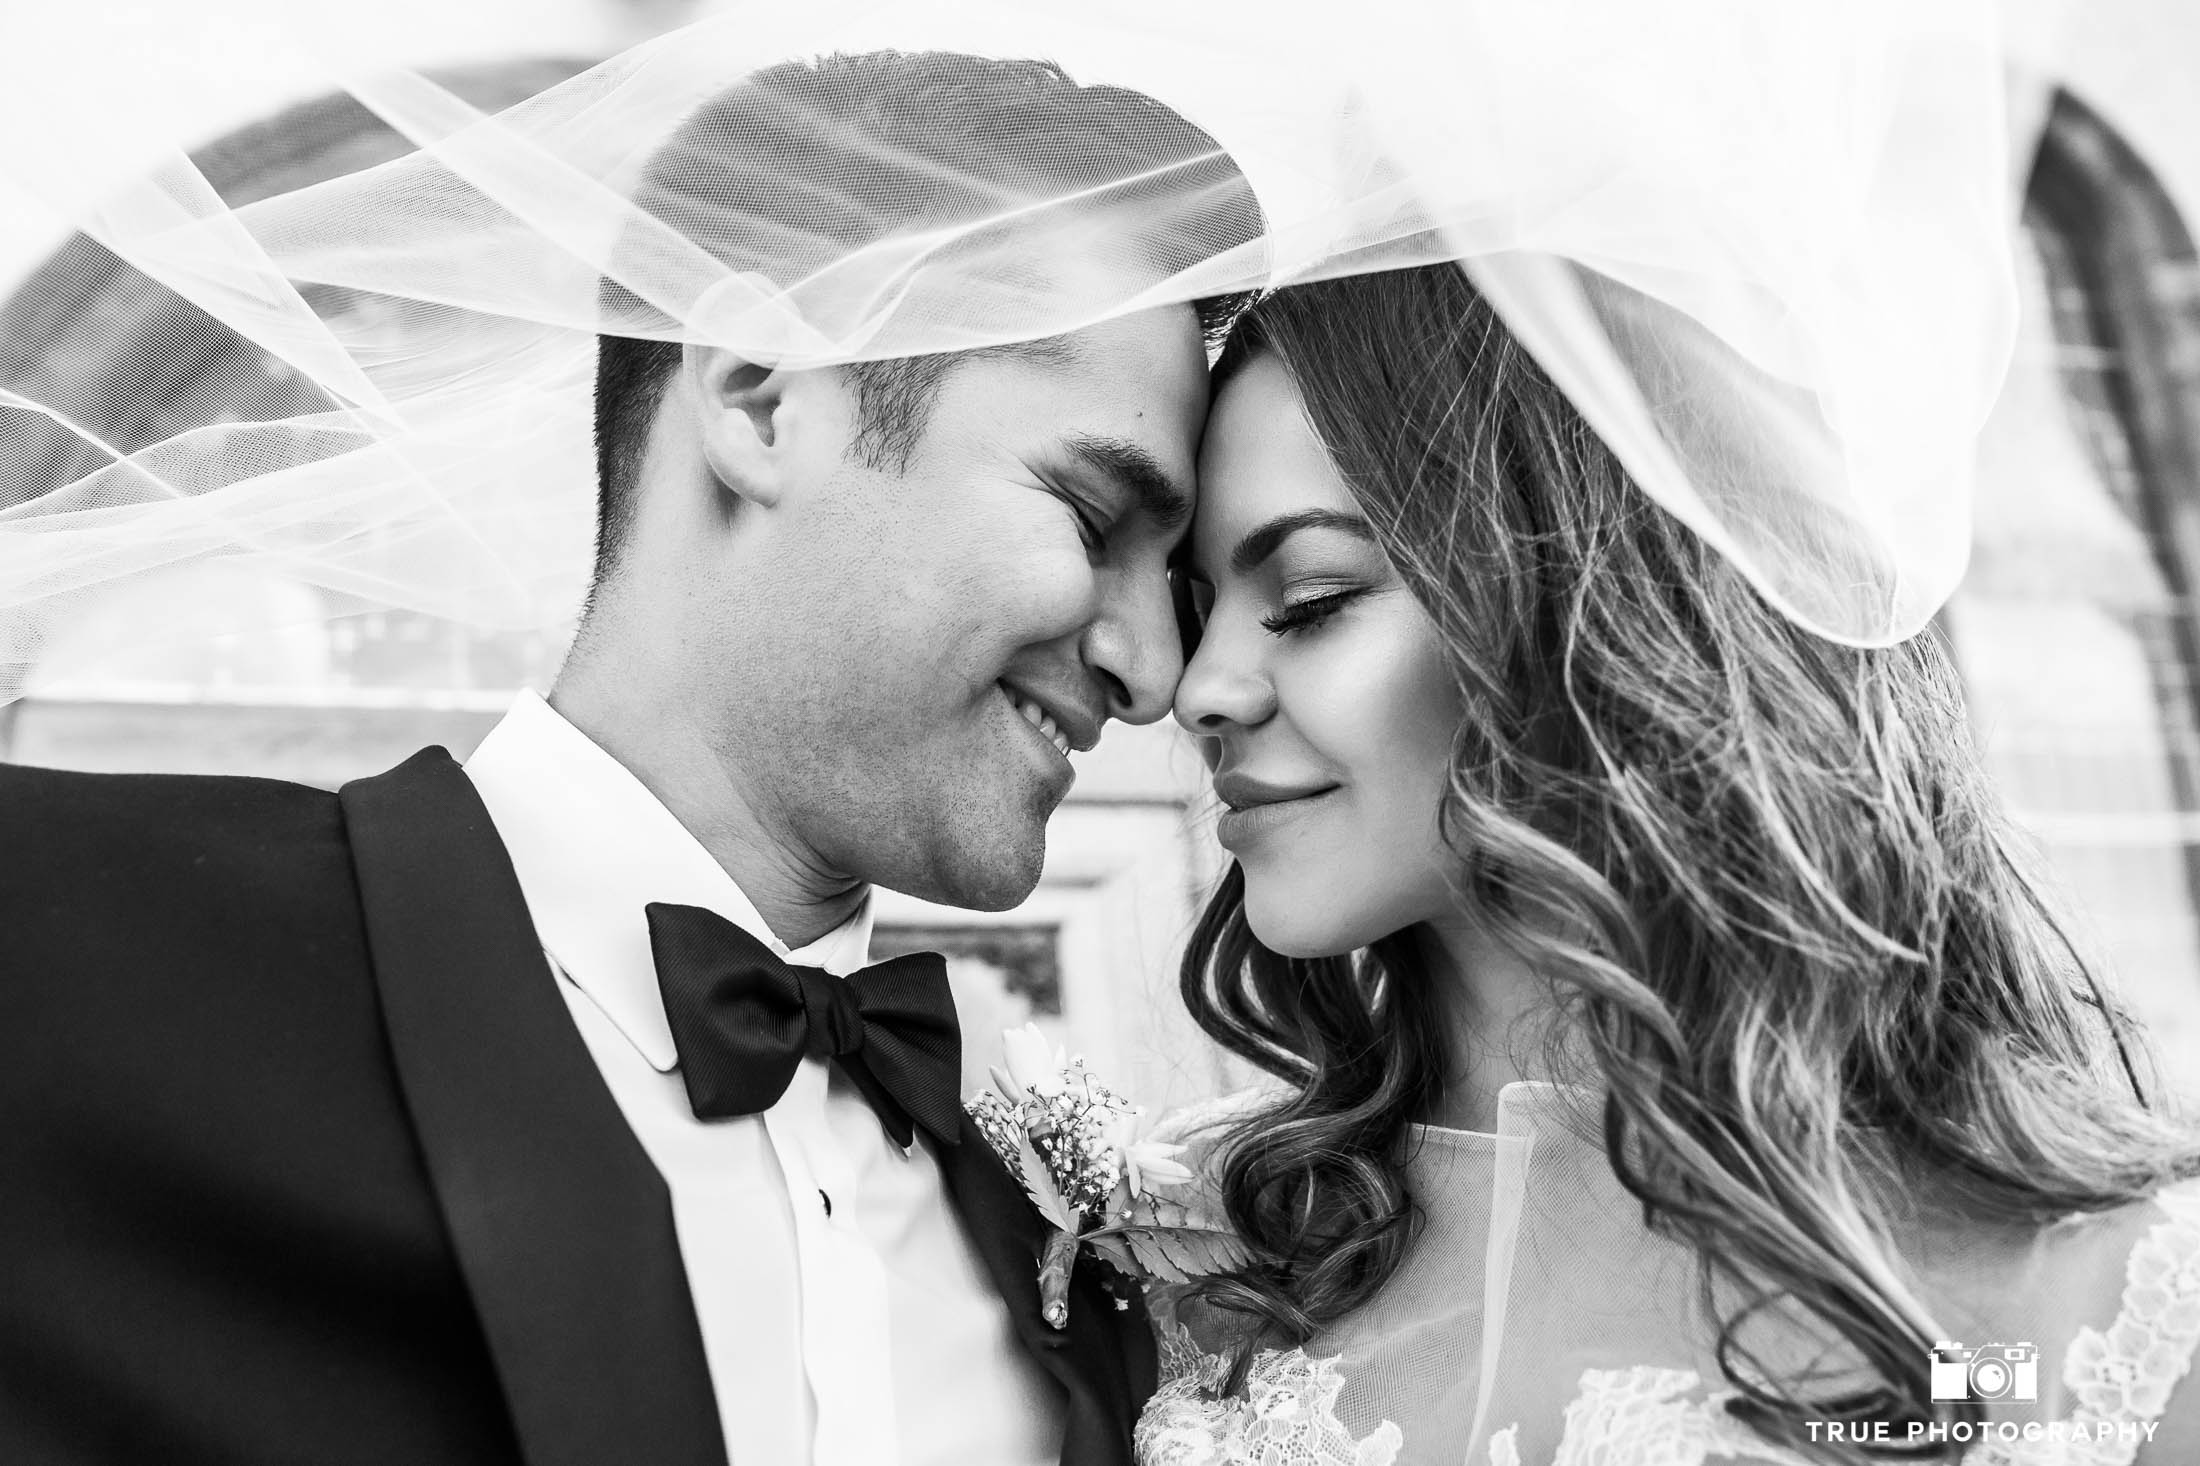 Bride and Groom embrace one another under wedding veil